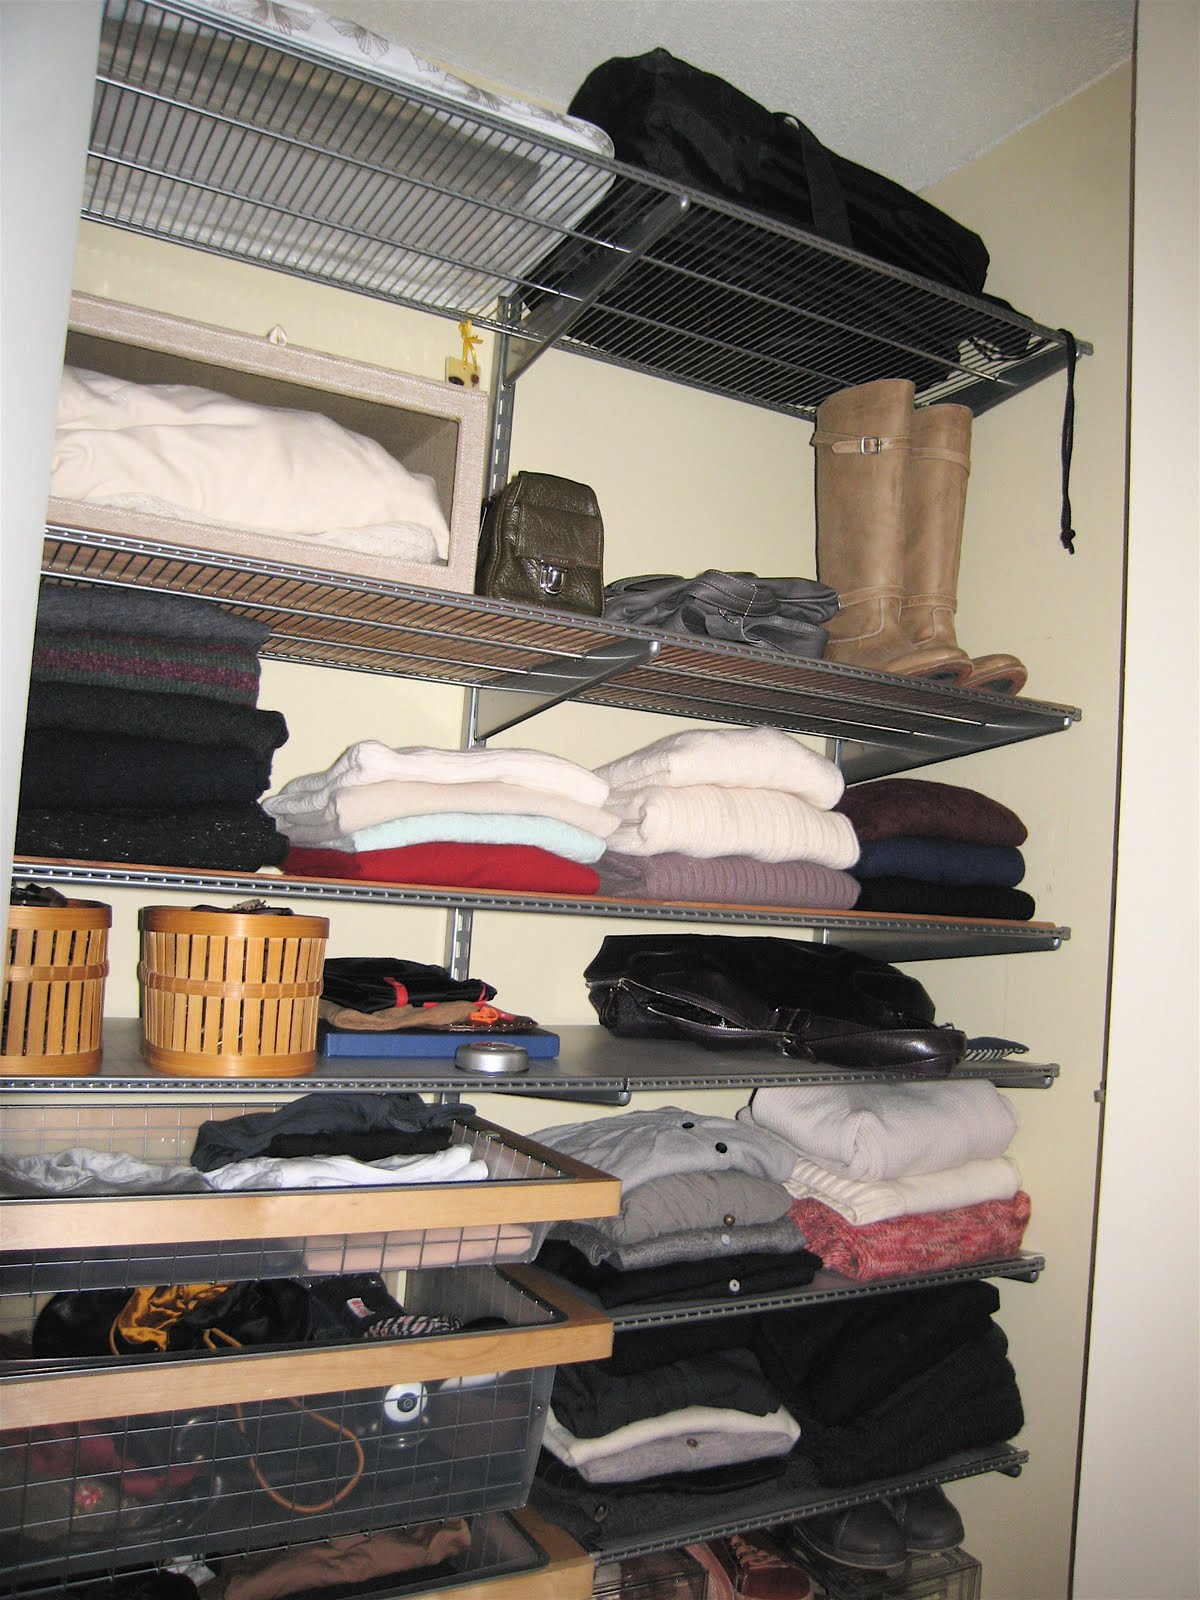 new after closets elfa their you husband bar seen cabinets now and her here medicine s before one clothes closet ve of